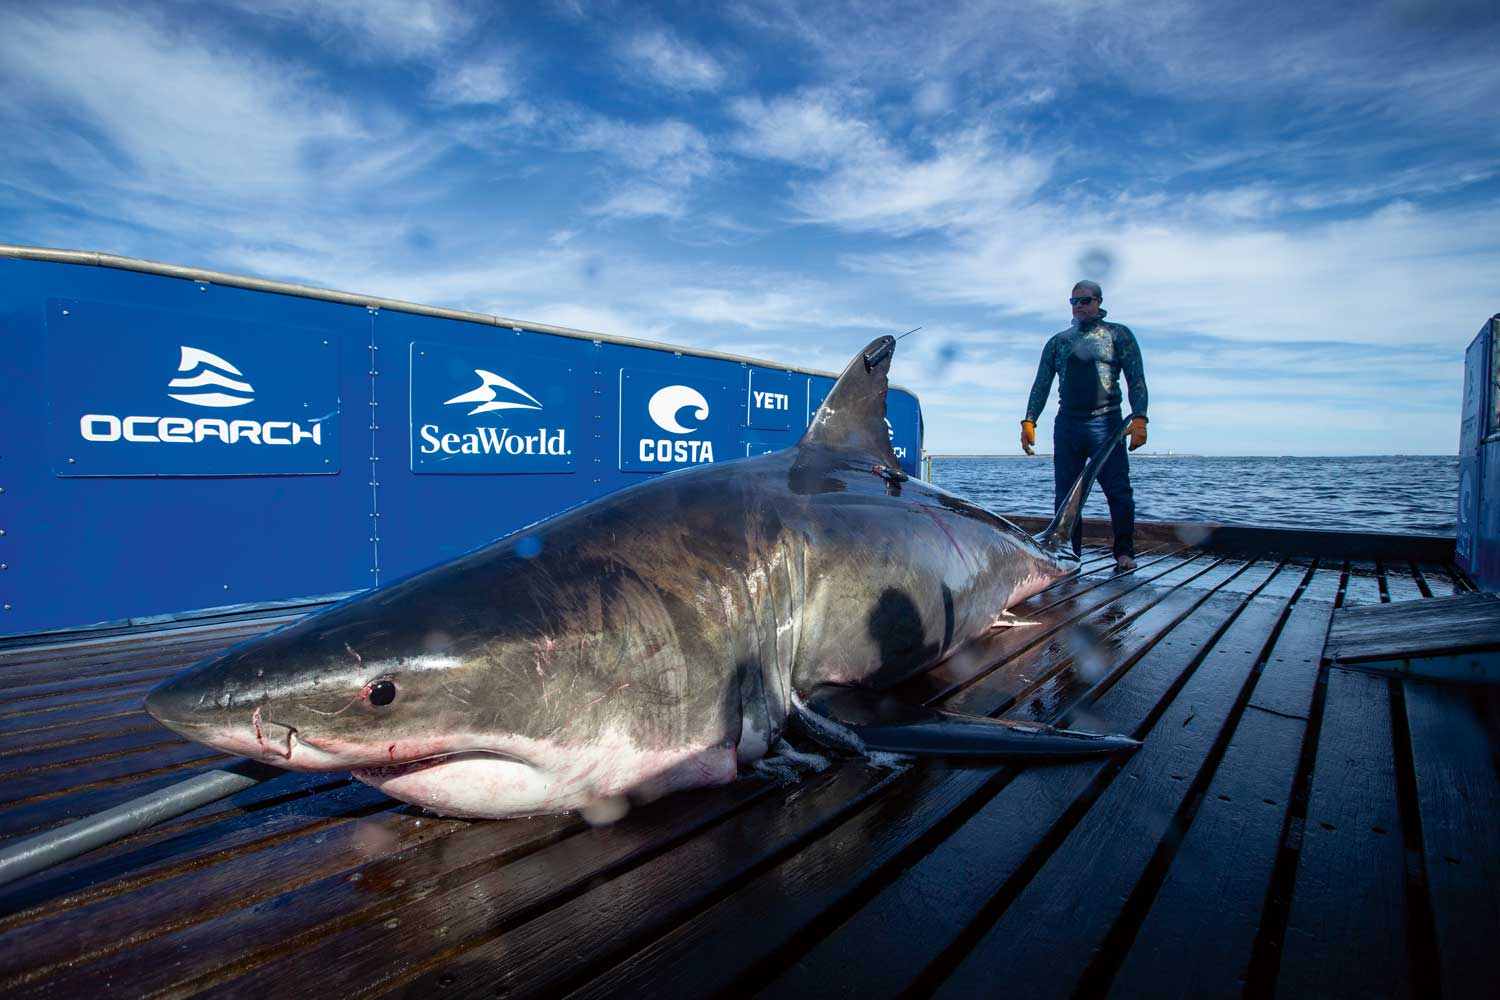 For its 28th expedition, OCEARCH launched an expedition in the Lowcountry - Georgia, South Carolina, and North Carolina - during which the team sampled and tagged Hilton, a mature male white shark